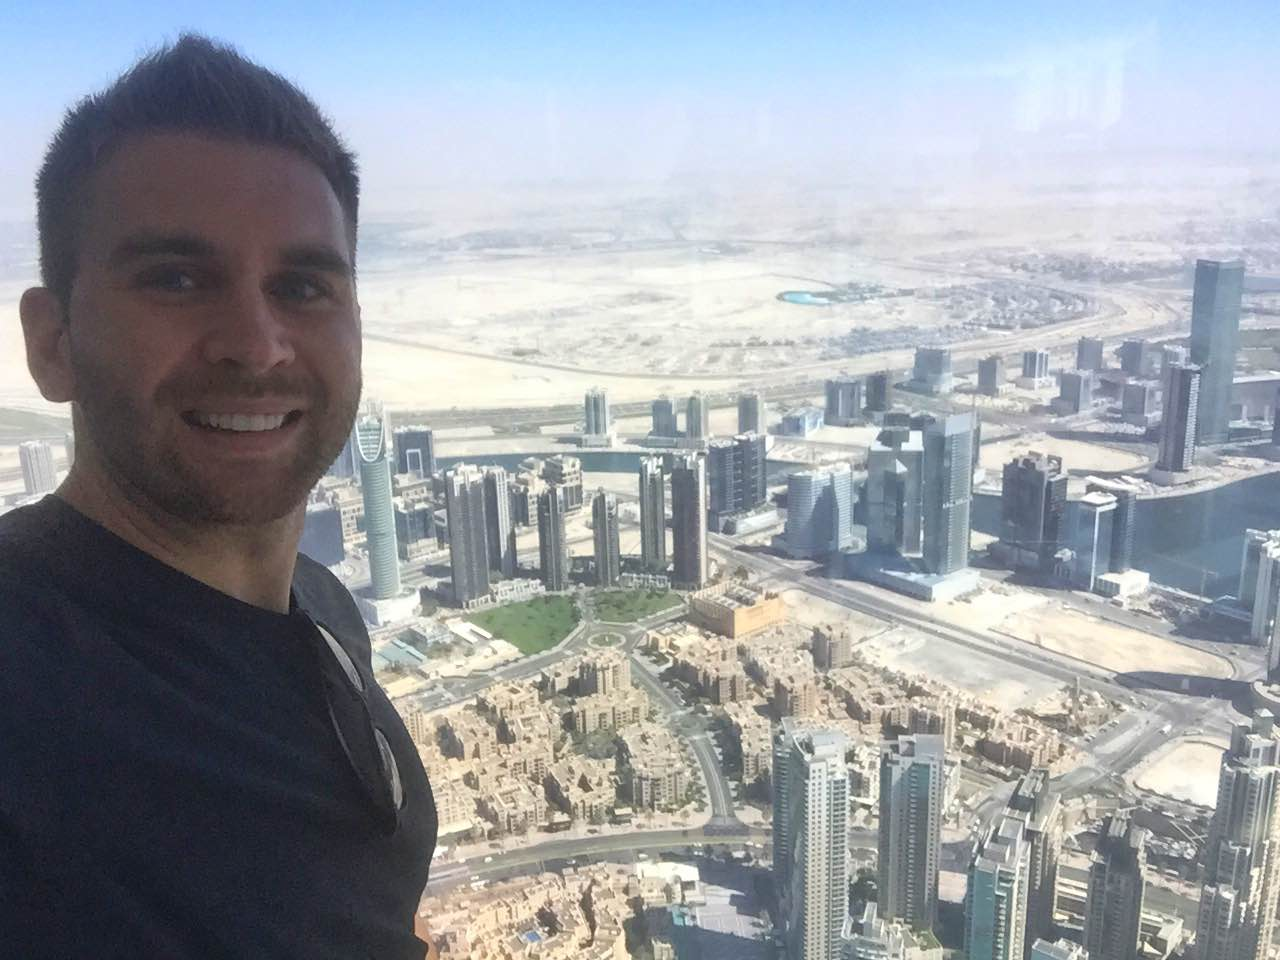 View from the top of the Burj Khalifa in Dubai